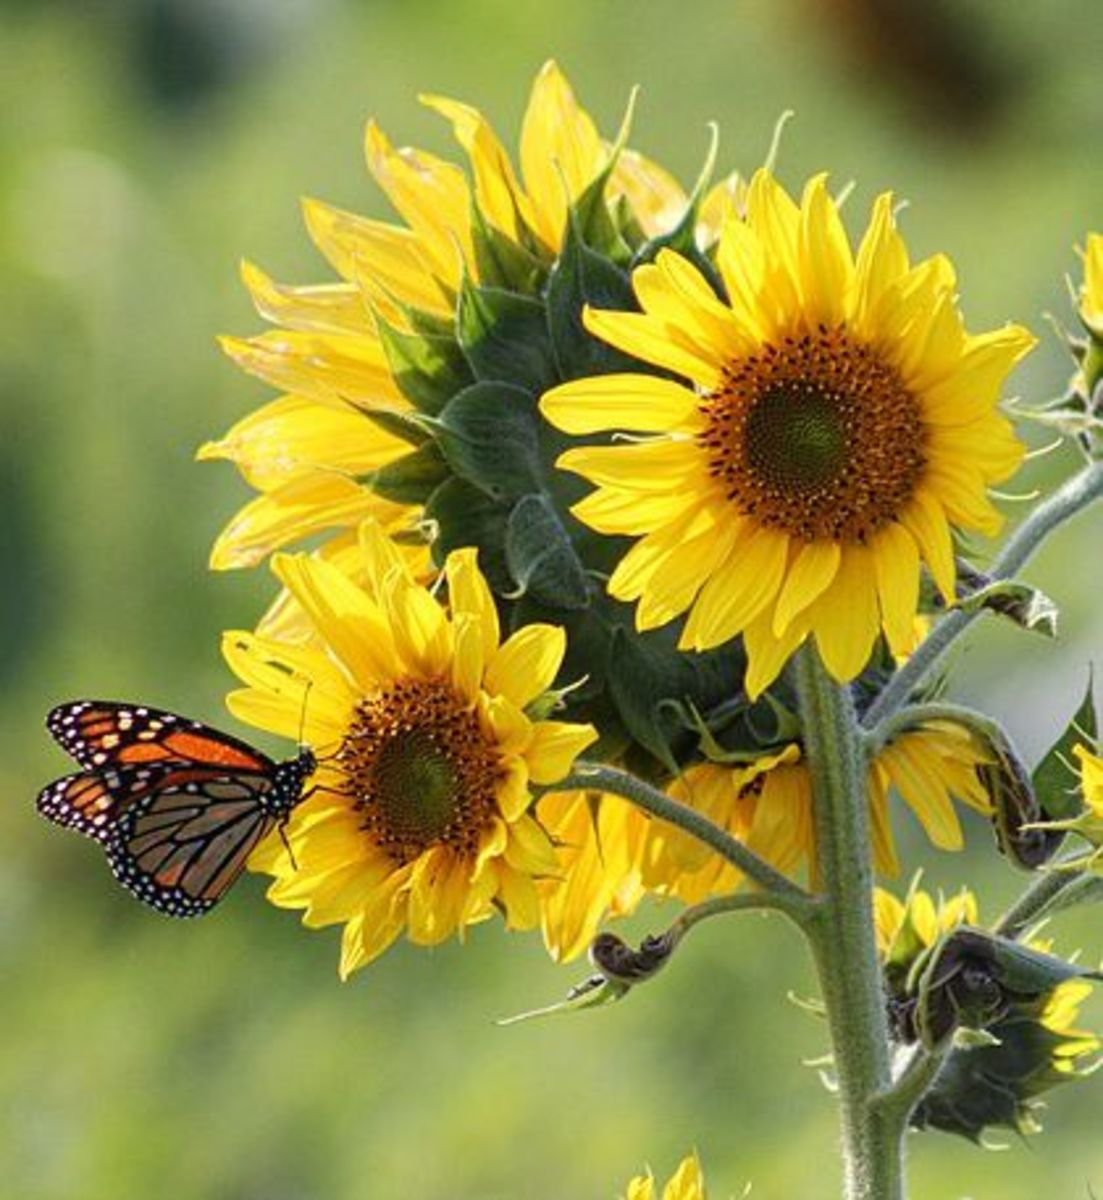 Sunflowers yellow petal flowers and butterfly